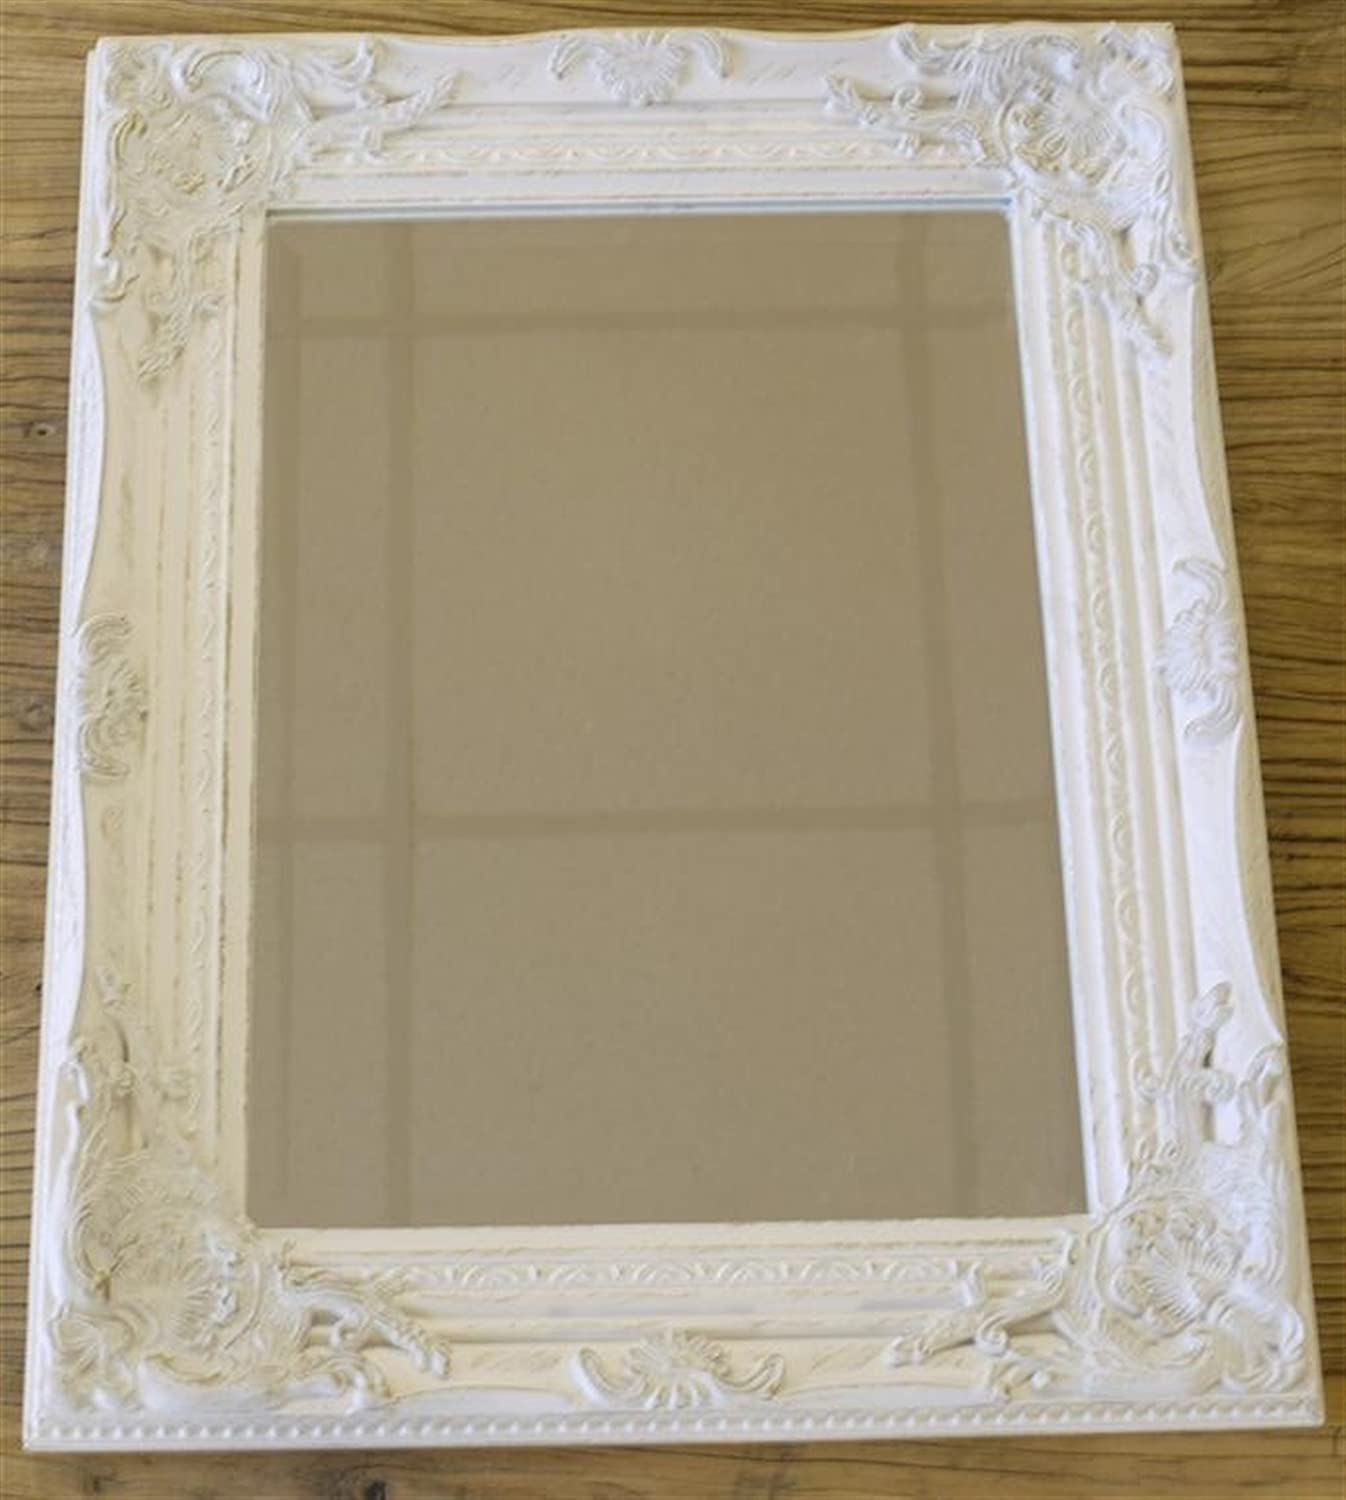 Distressed Antique French Ornate Style White Wall Mirror Shabby Chic Amazoncouk Kitchen Home